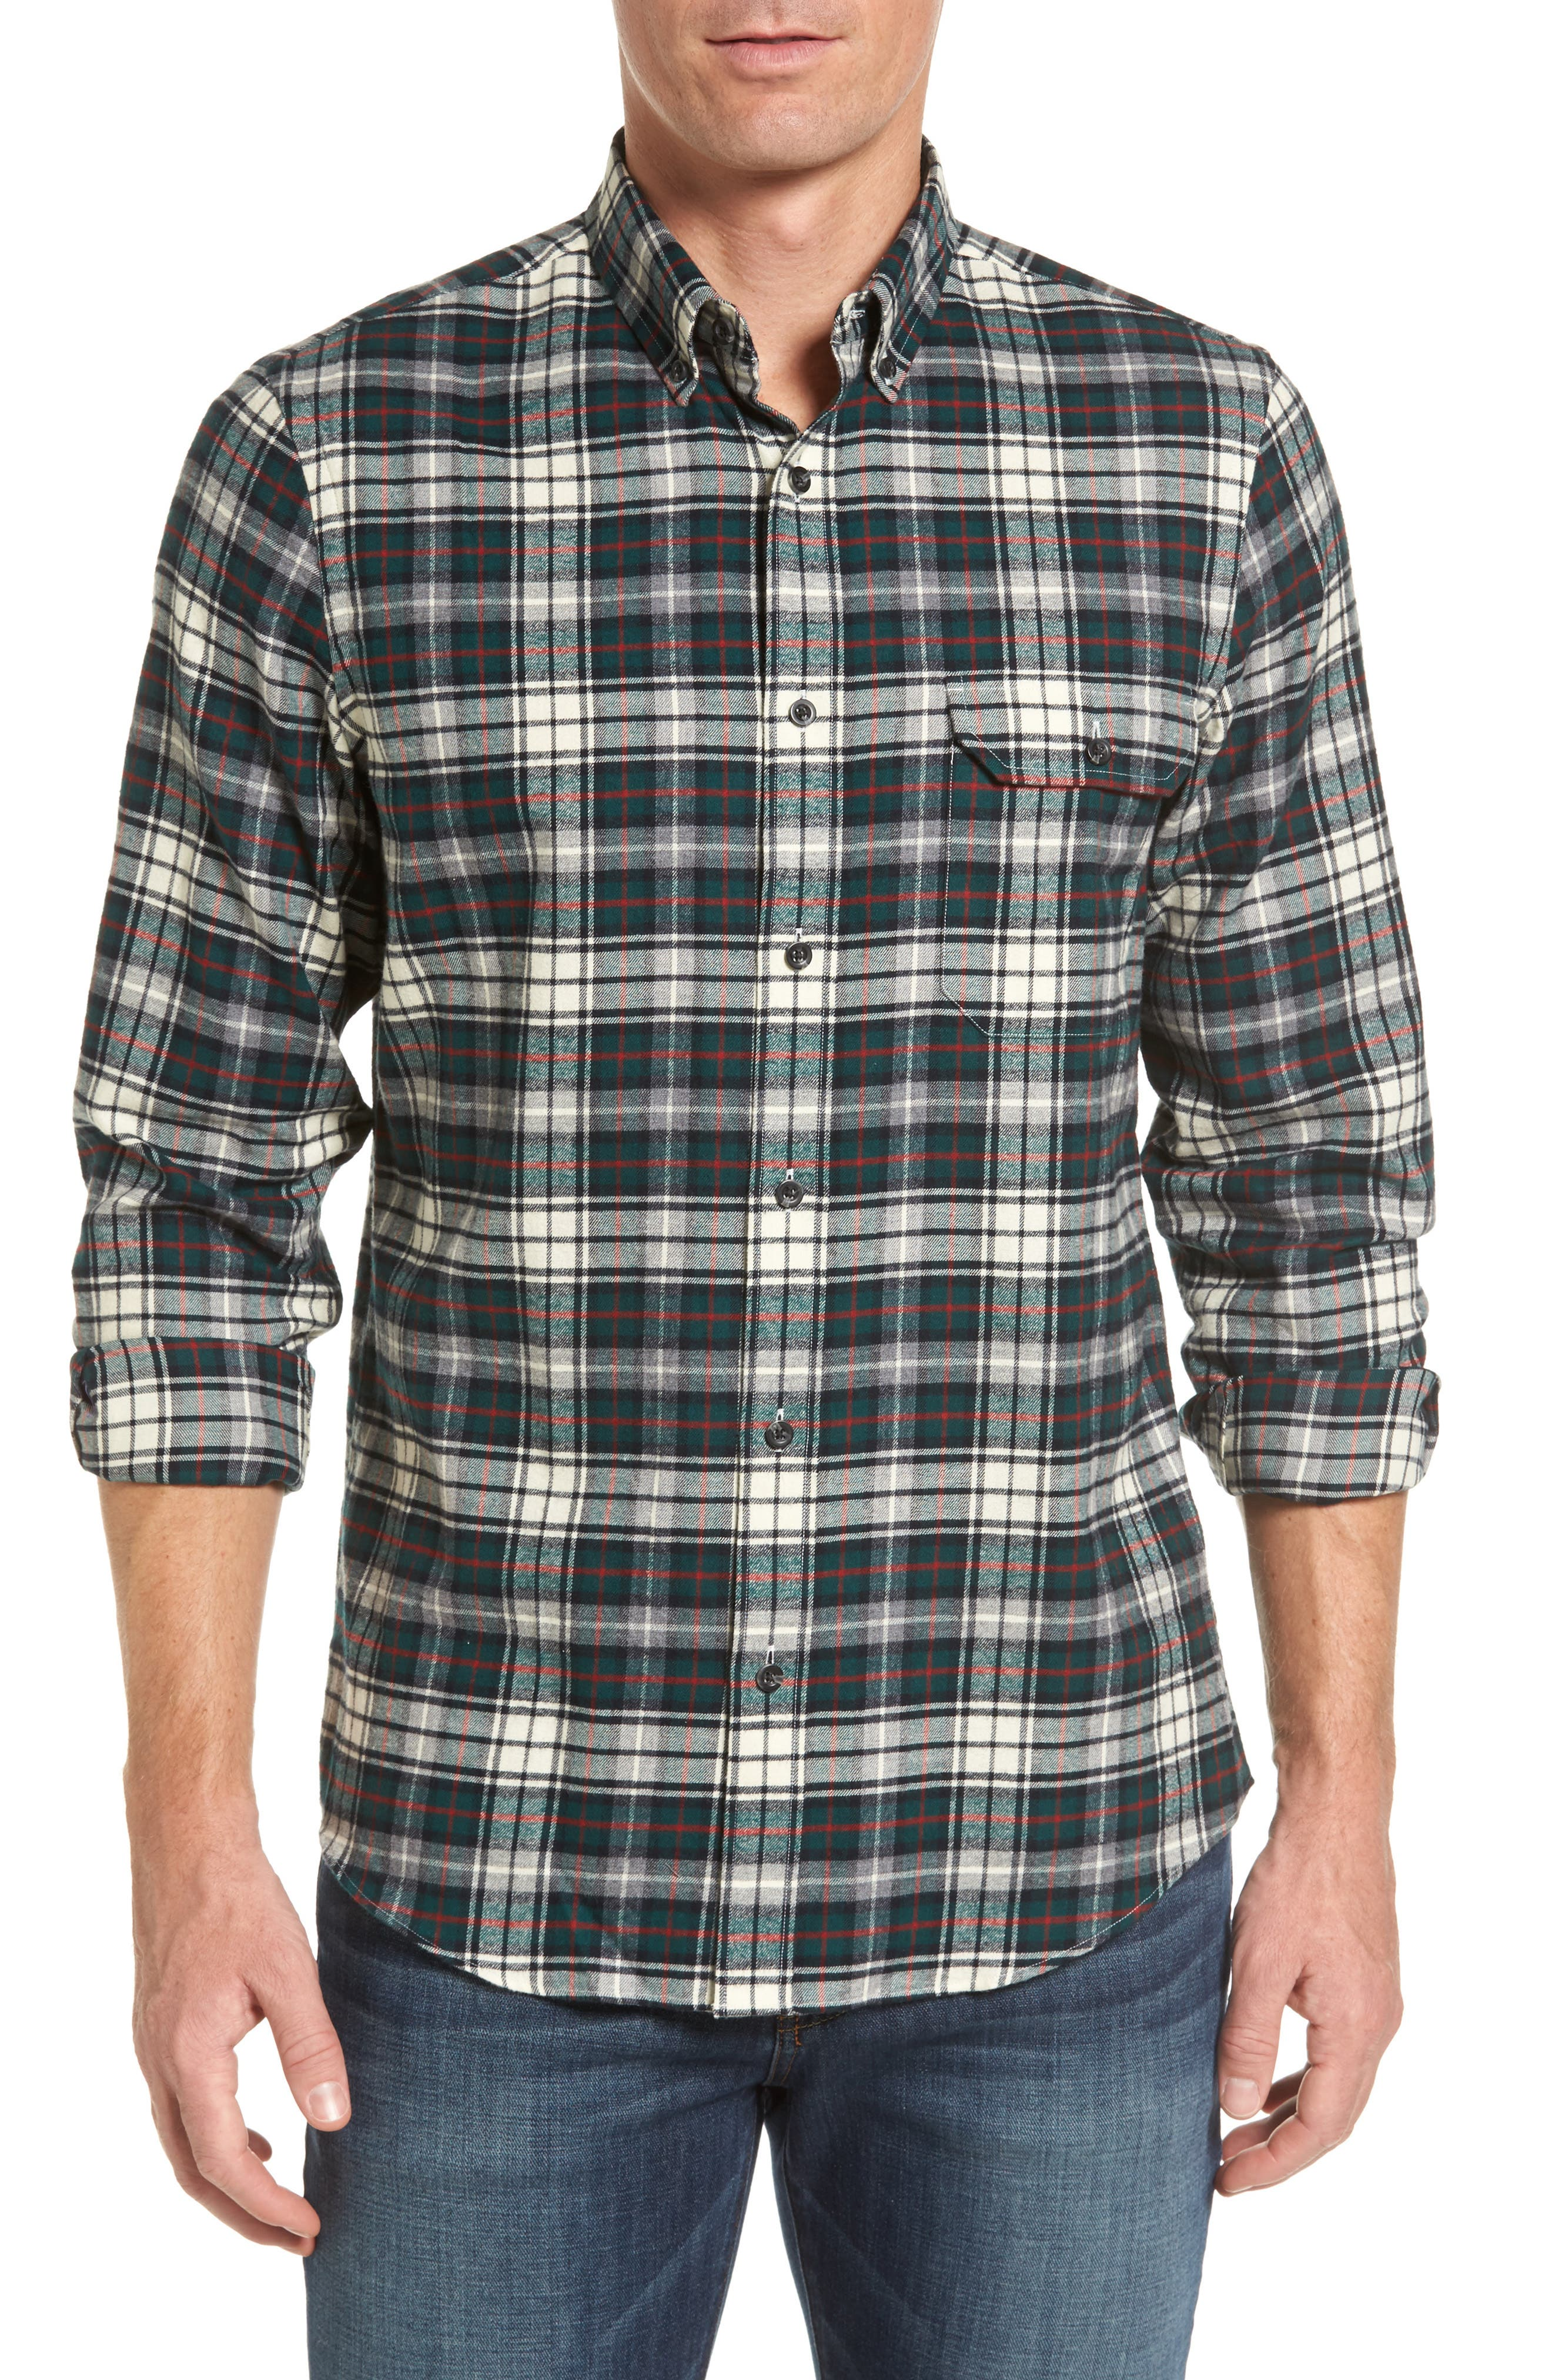 Alternate Image 1 Selected - Nordstrom Men's Shop Regular Fit Plaid Sport Shirt